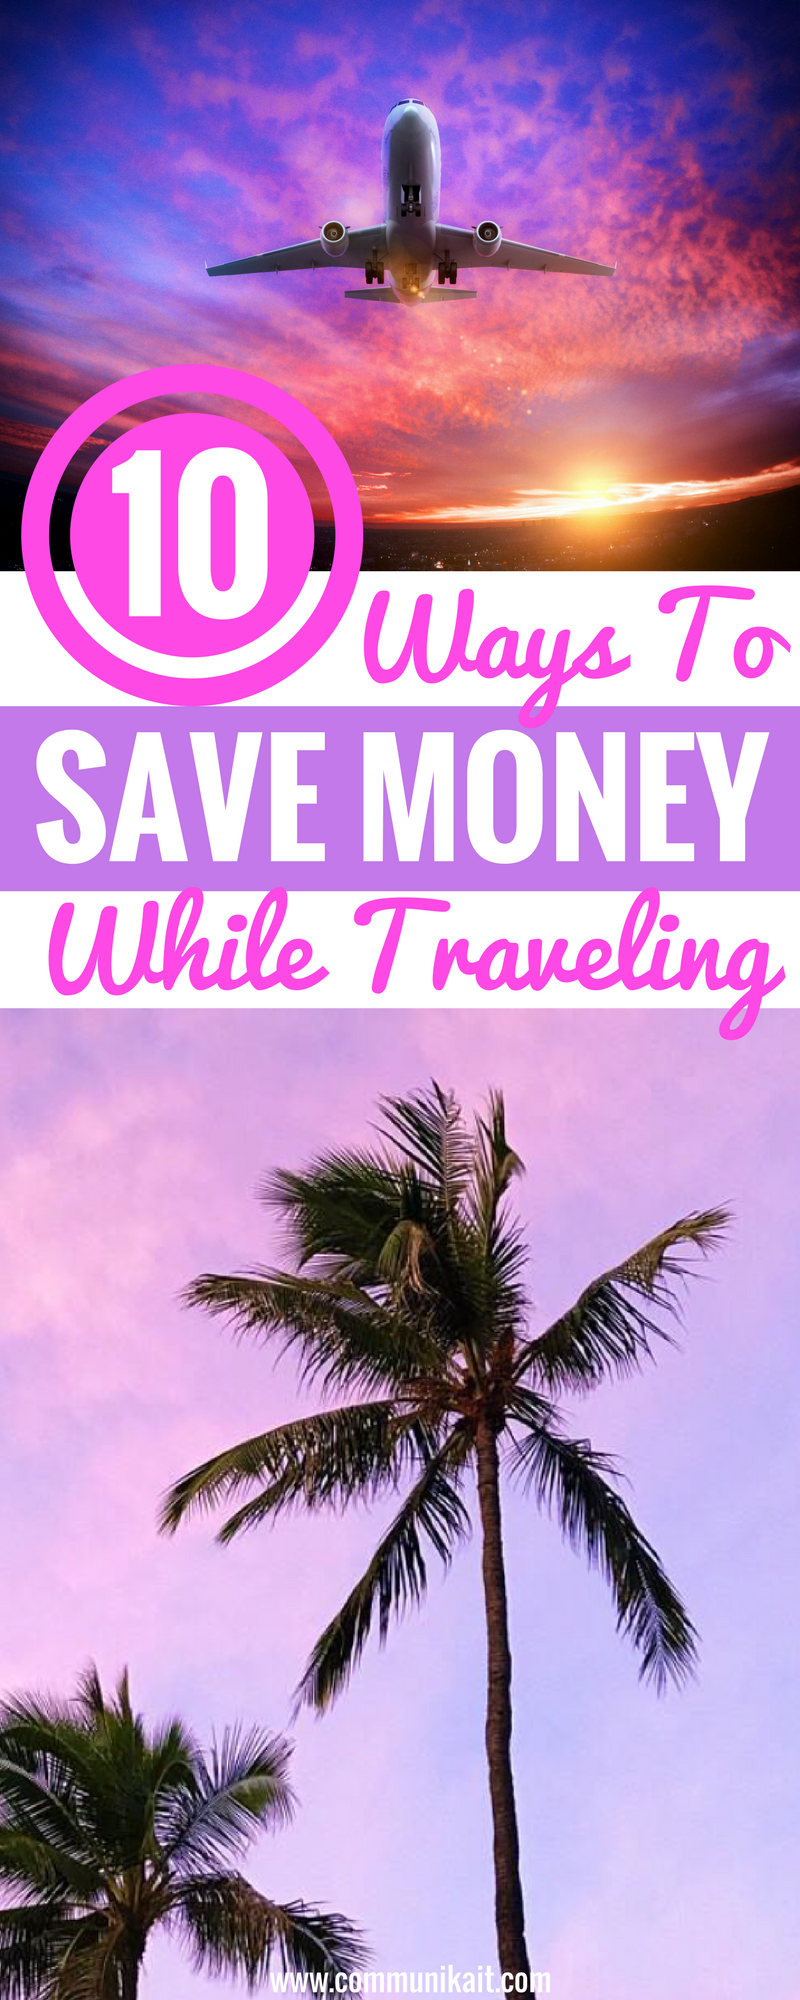 10 Ways To Save Money While Traveling - Save Money On Trips - Travel Tips - Travel On A Budget - Travel With Kids - European Travel - Budget Traveling - How To Save Money For Traveling - Communikait by Kait Hanson